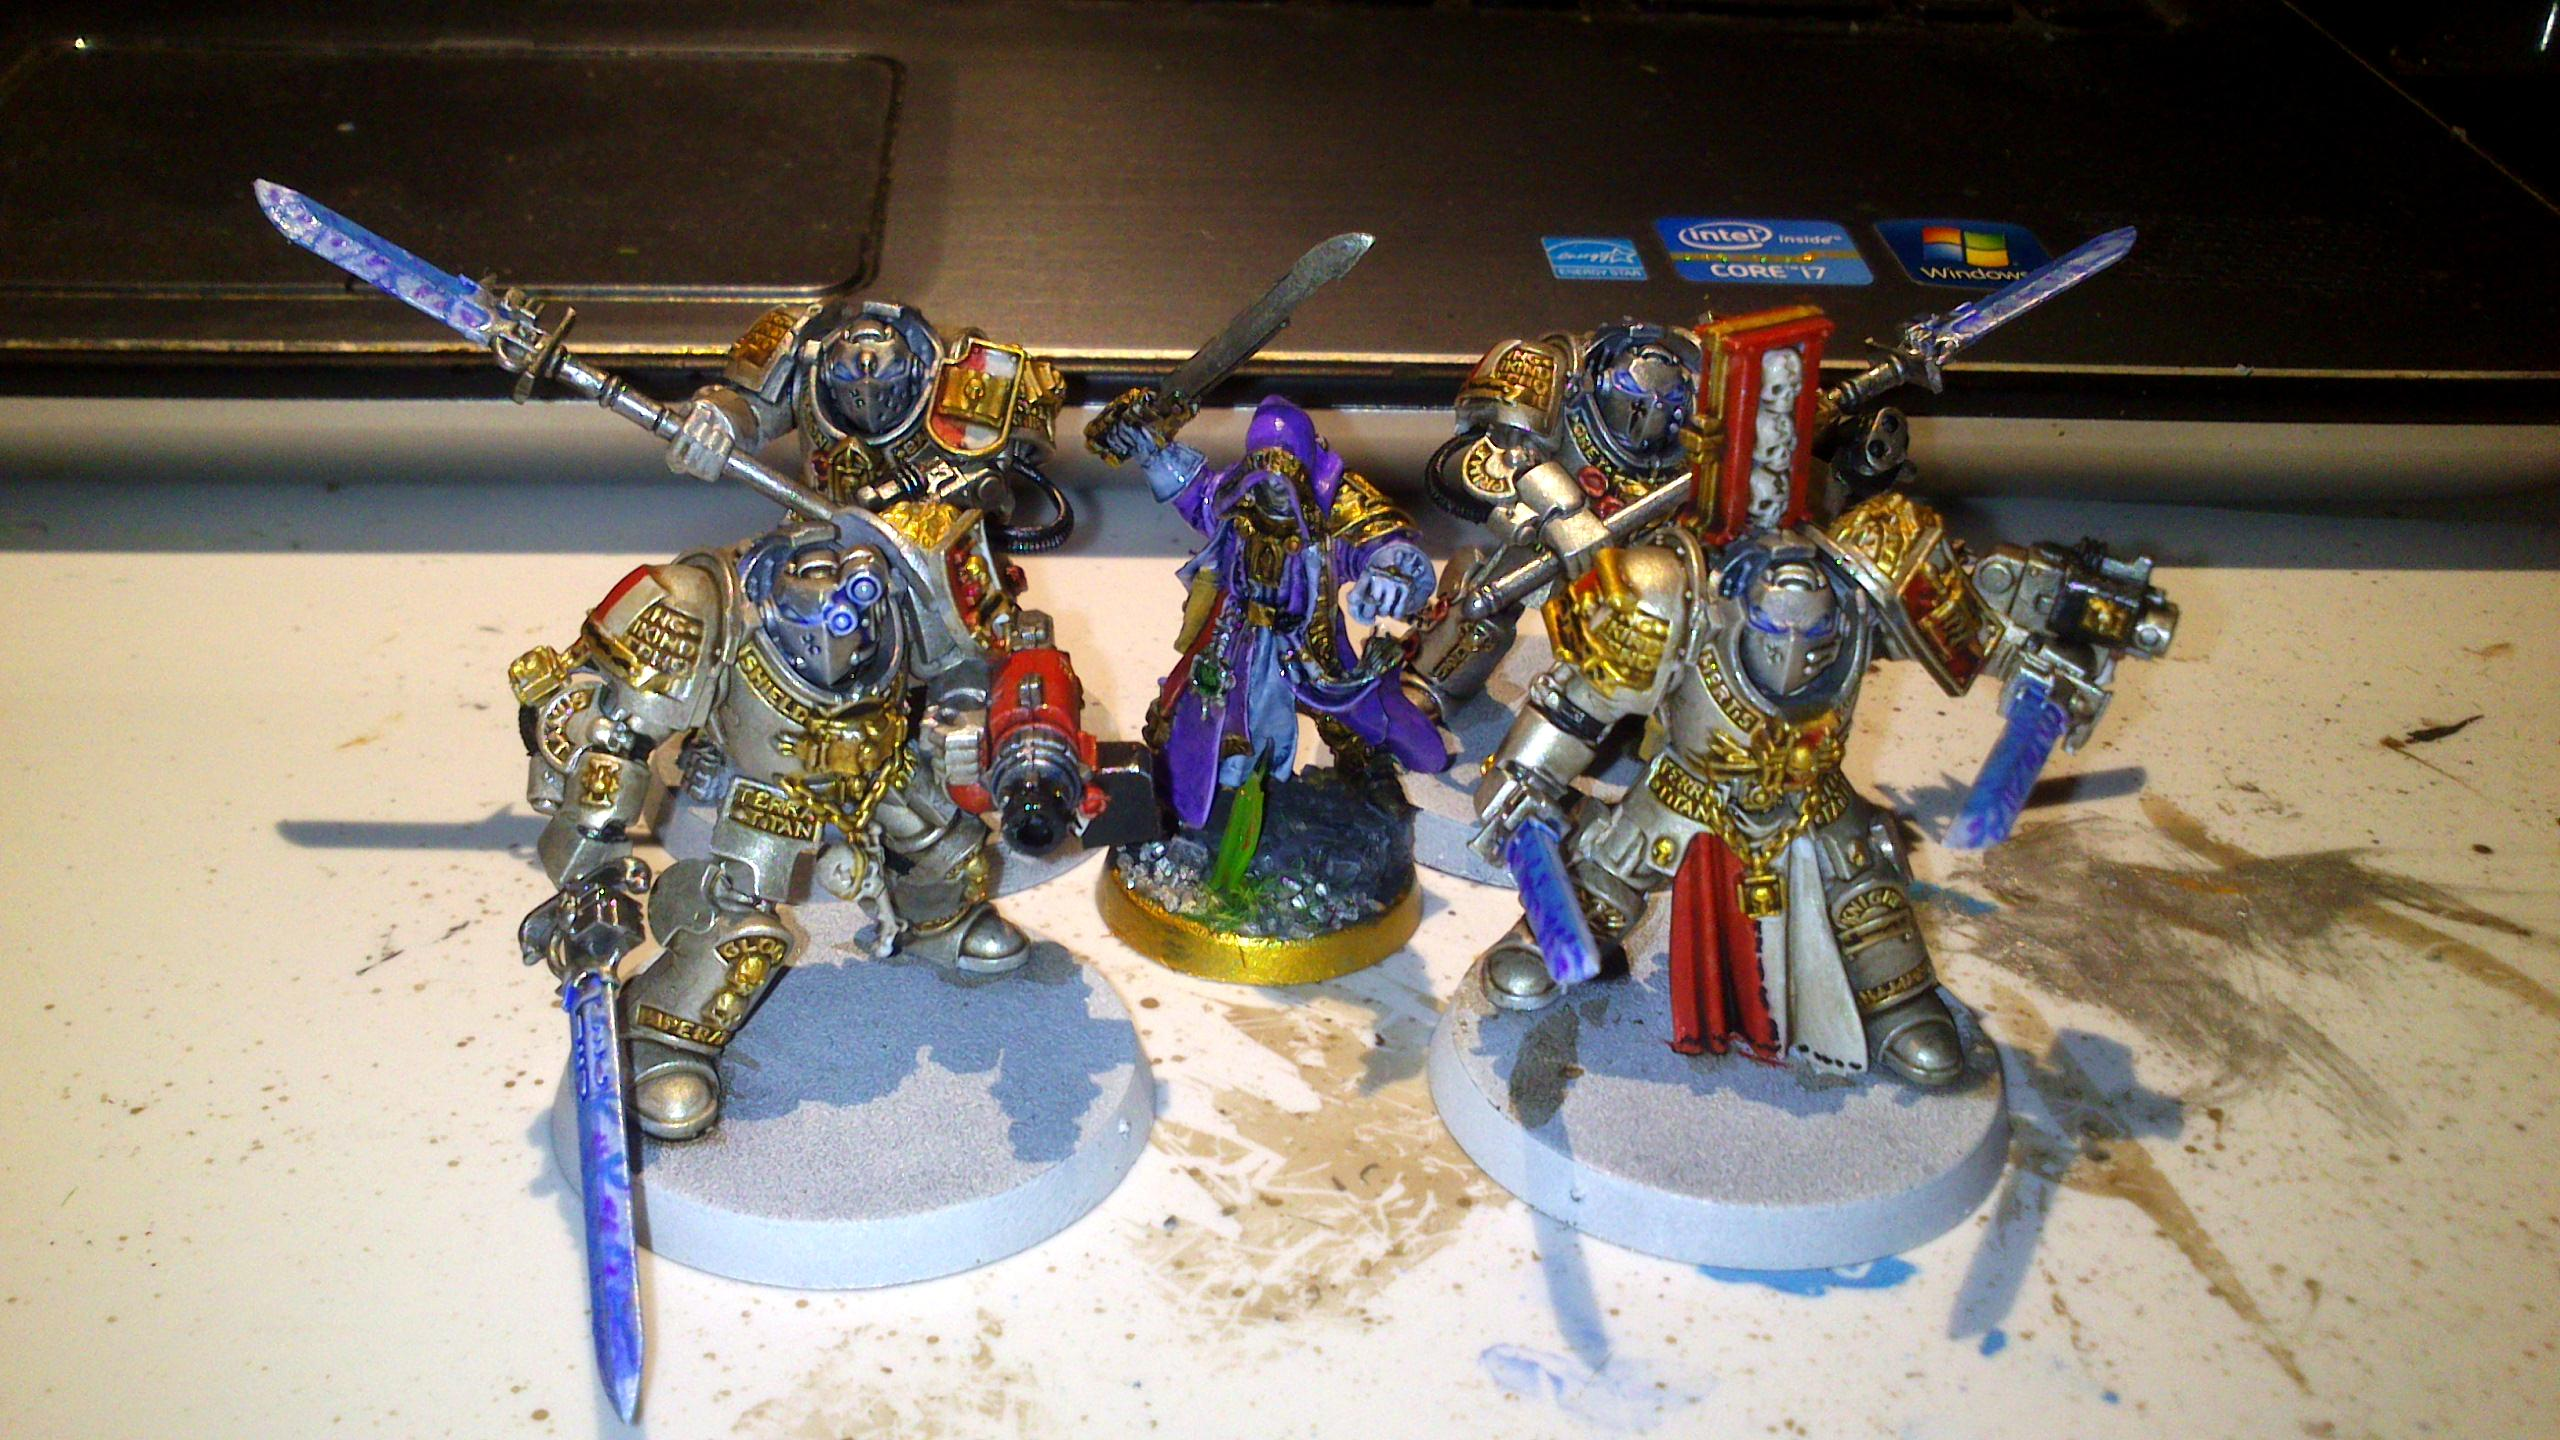 Damocles, Grey Knights, Inquisition, Inquisitor, Paladins, Rhino